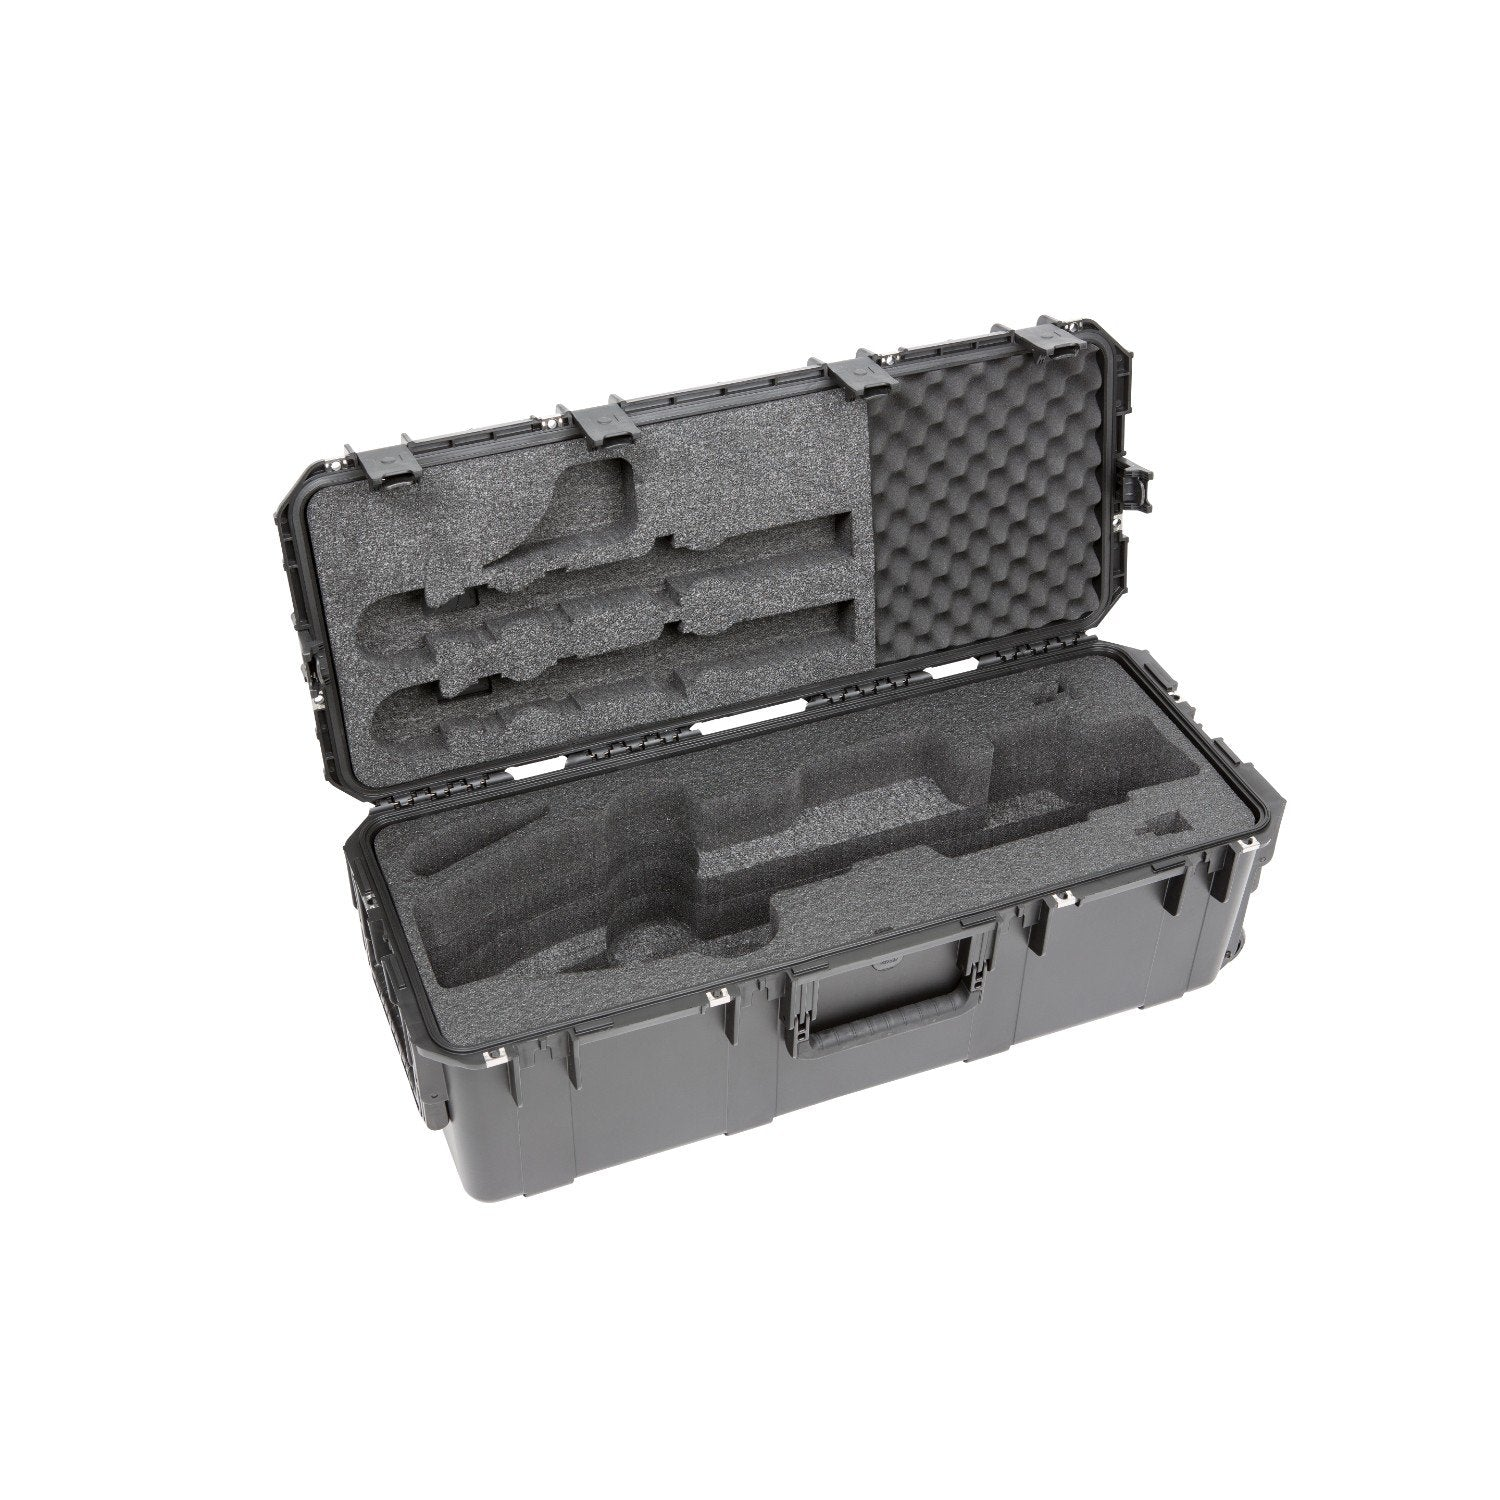 SKB iSeries Ultimate Waterproof Crossbow Case